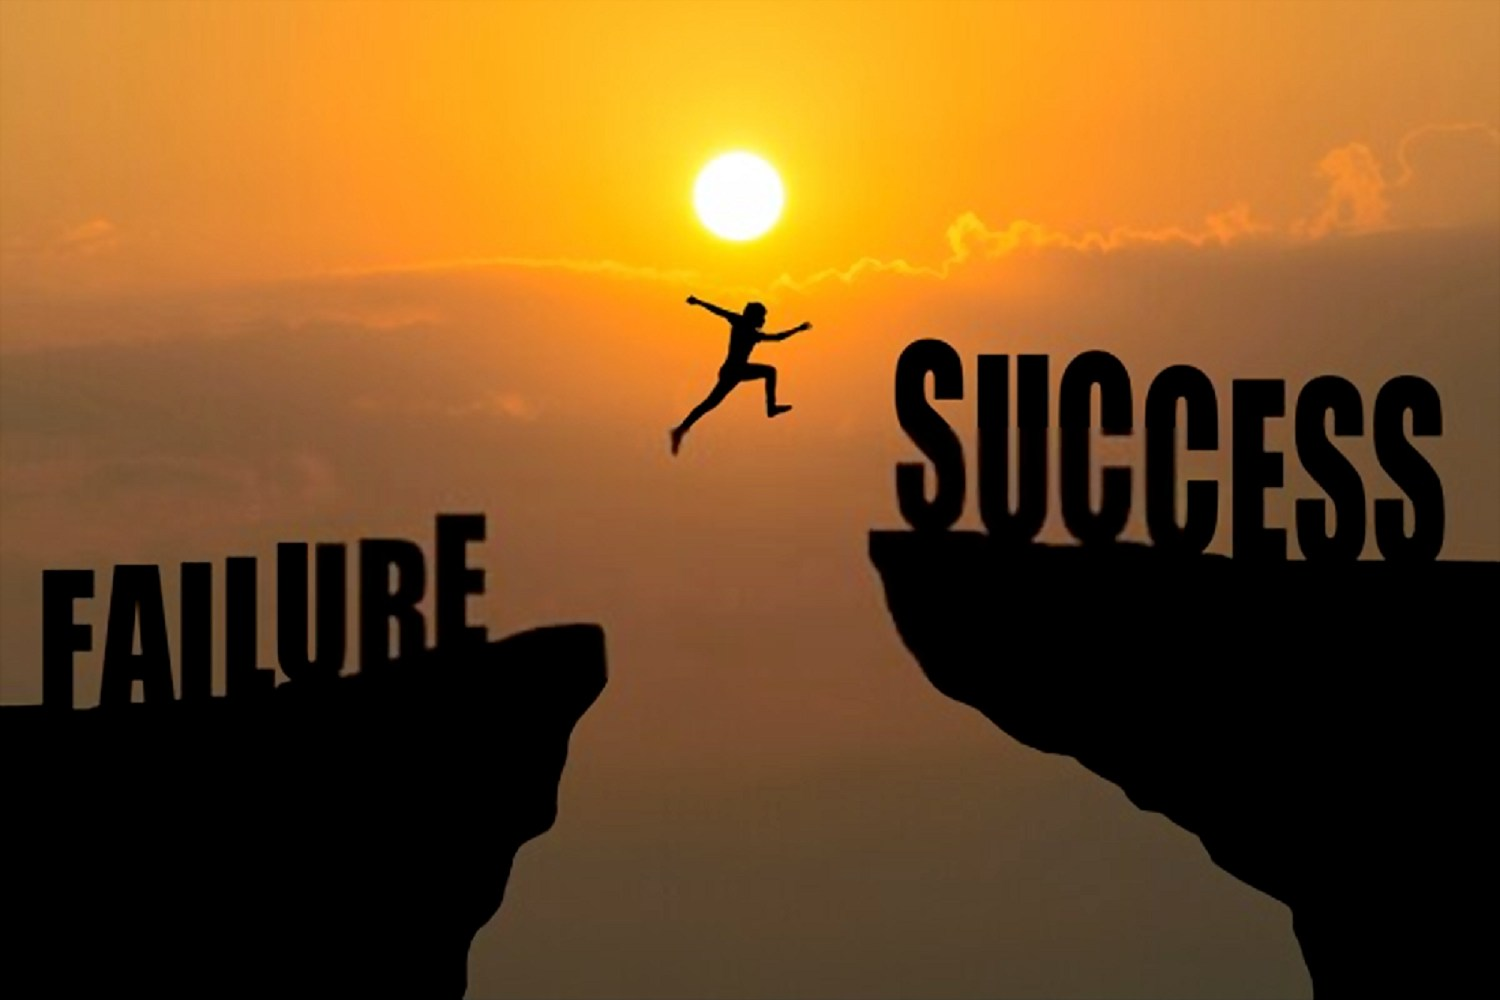 How to Overcome Failure and Move on in Life